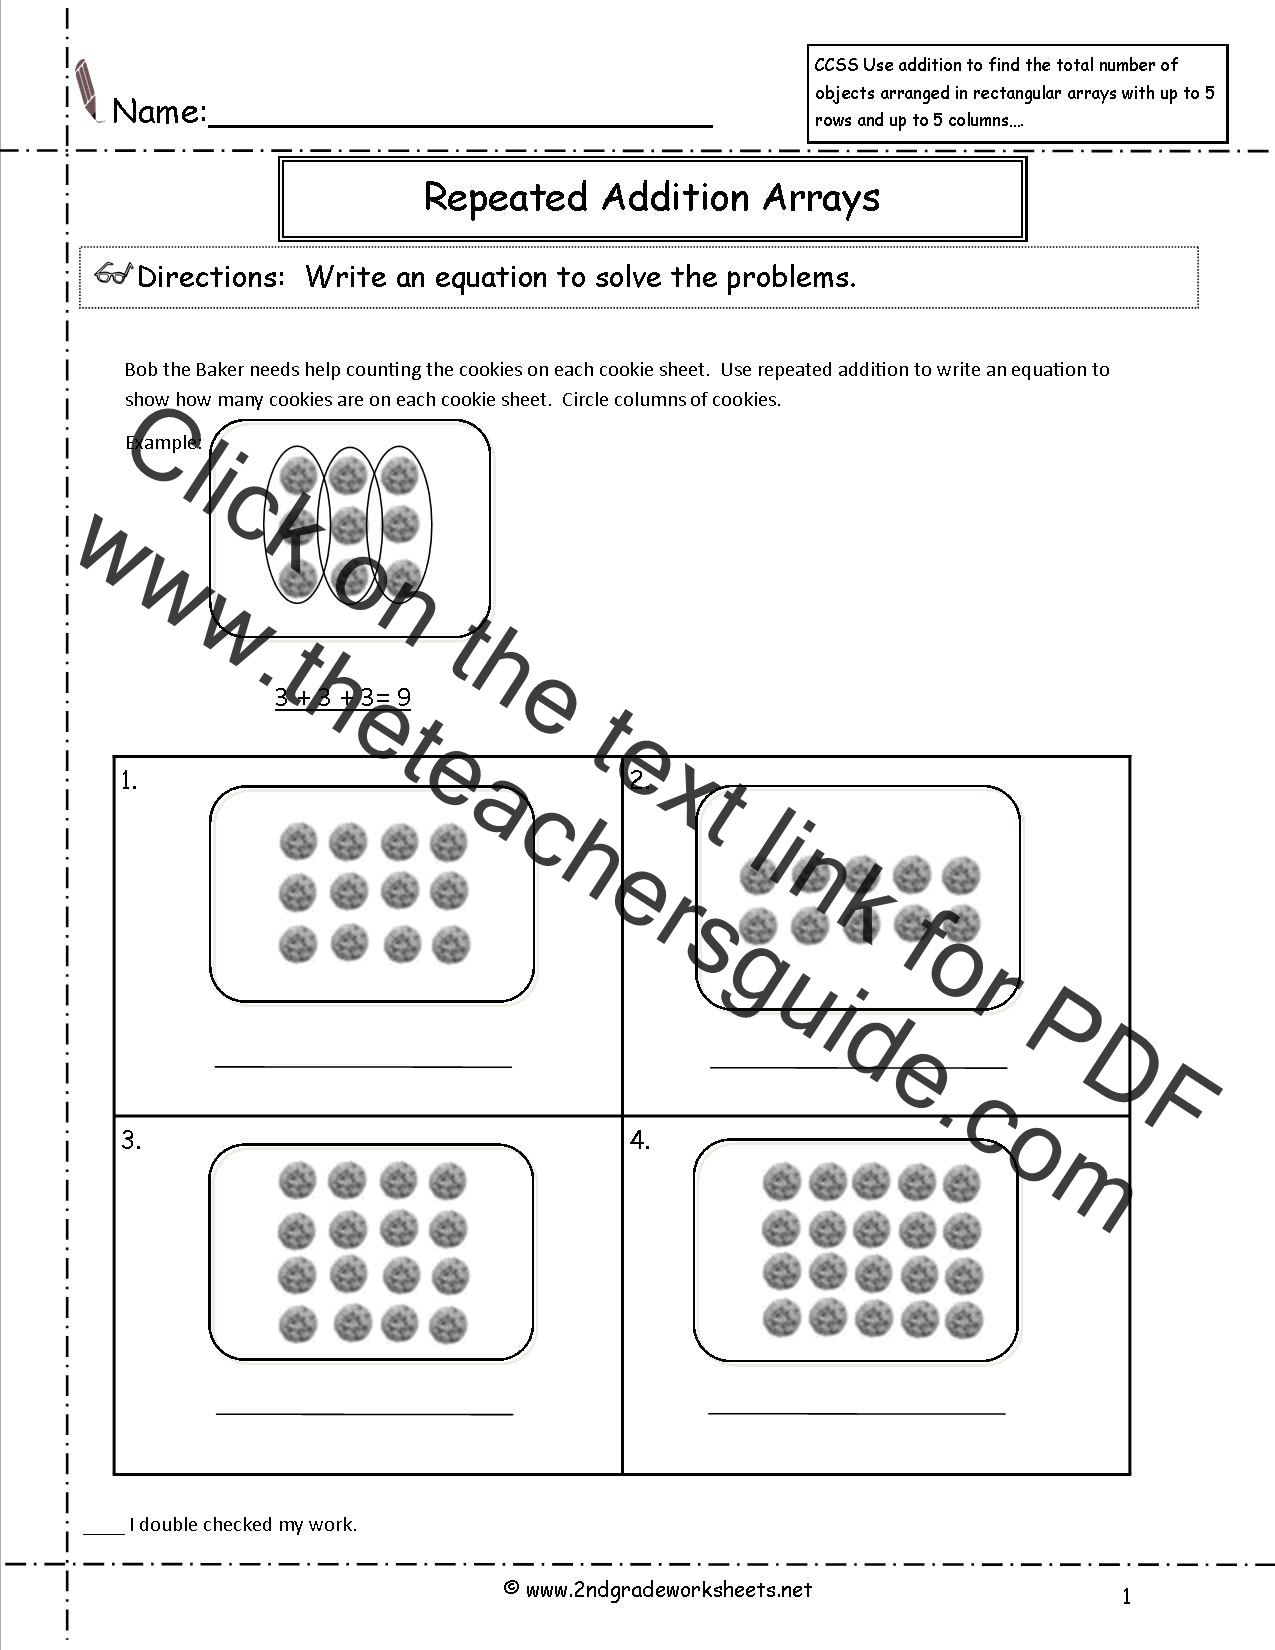 CCSS 2OA4 Worksheets – Addition Worksheet Grade 2